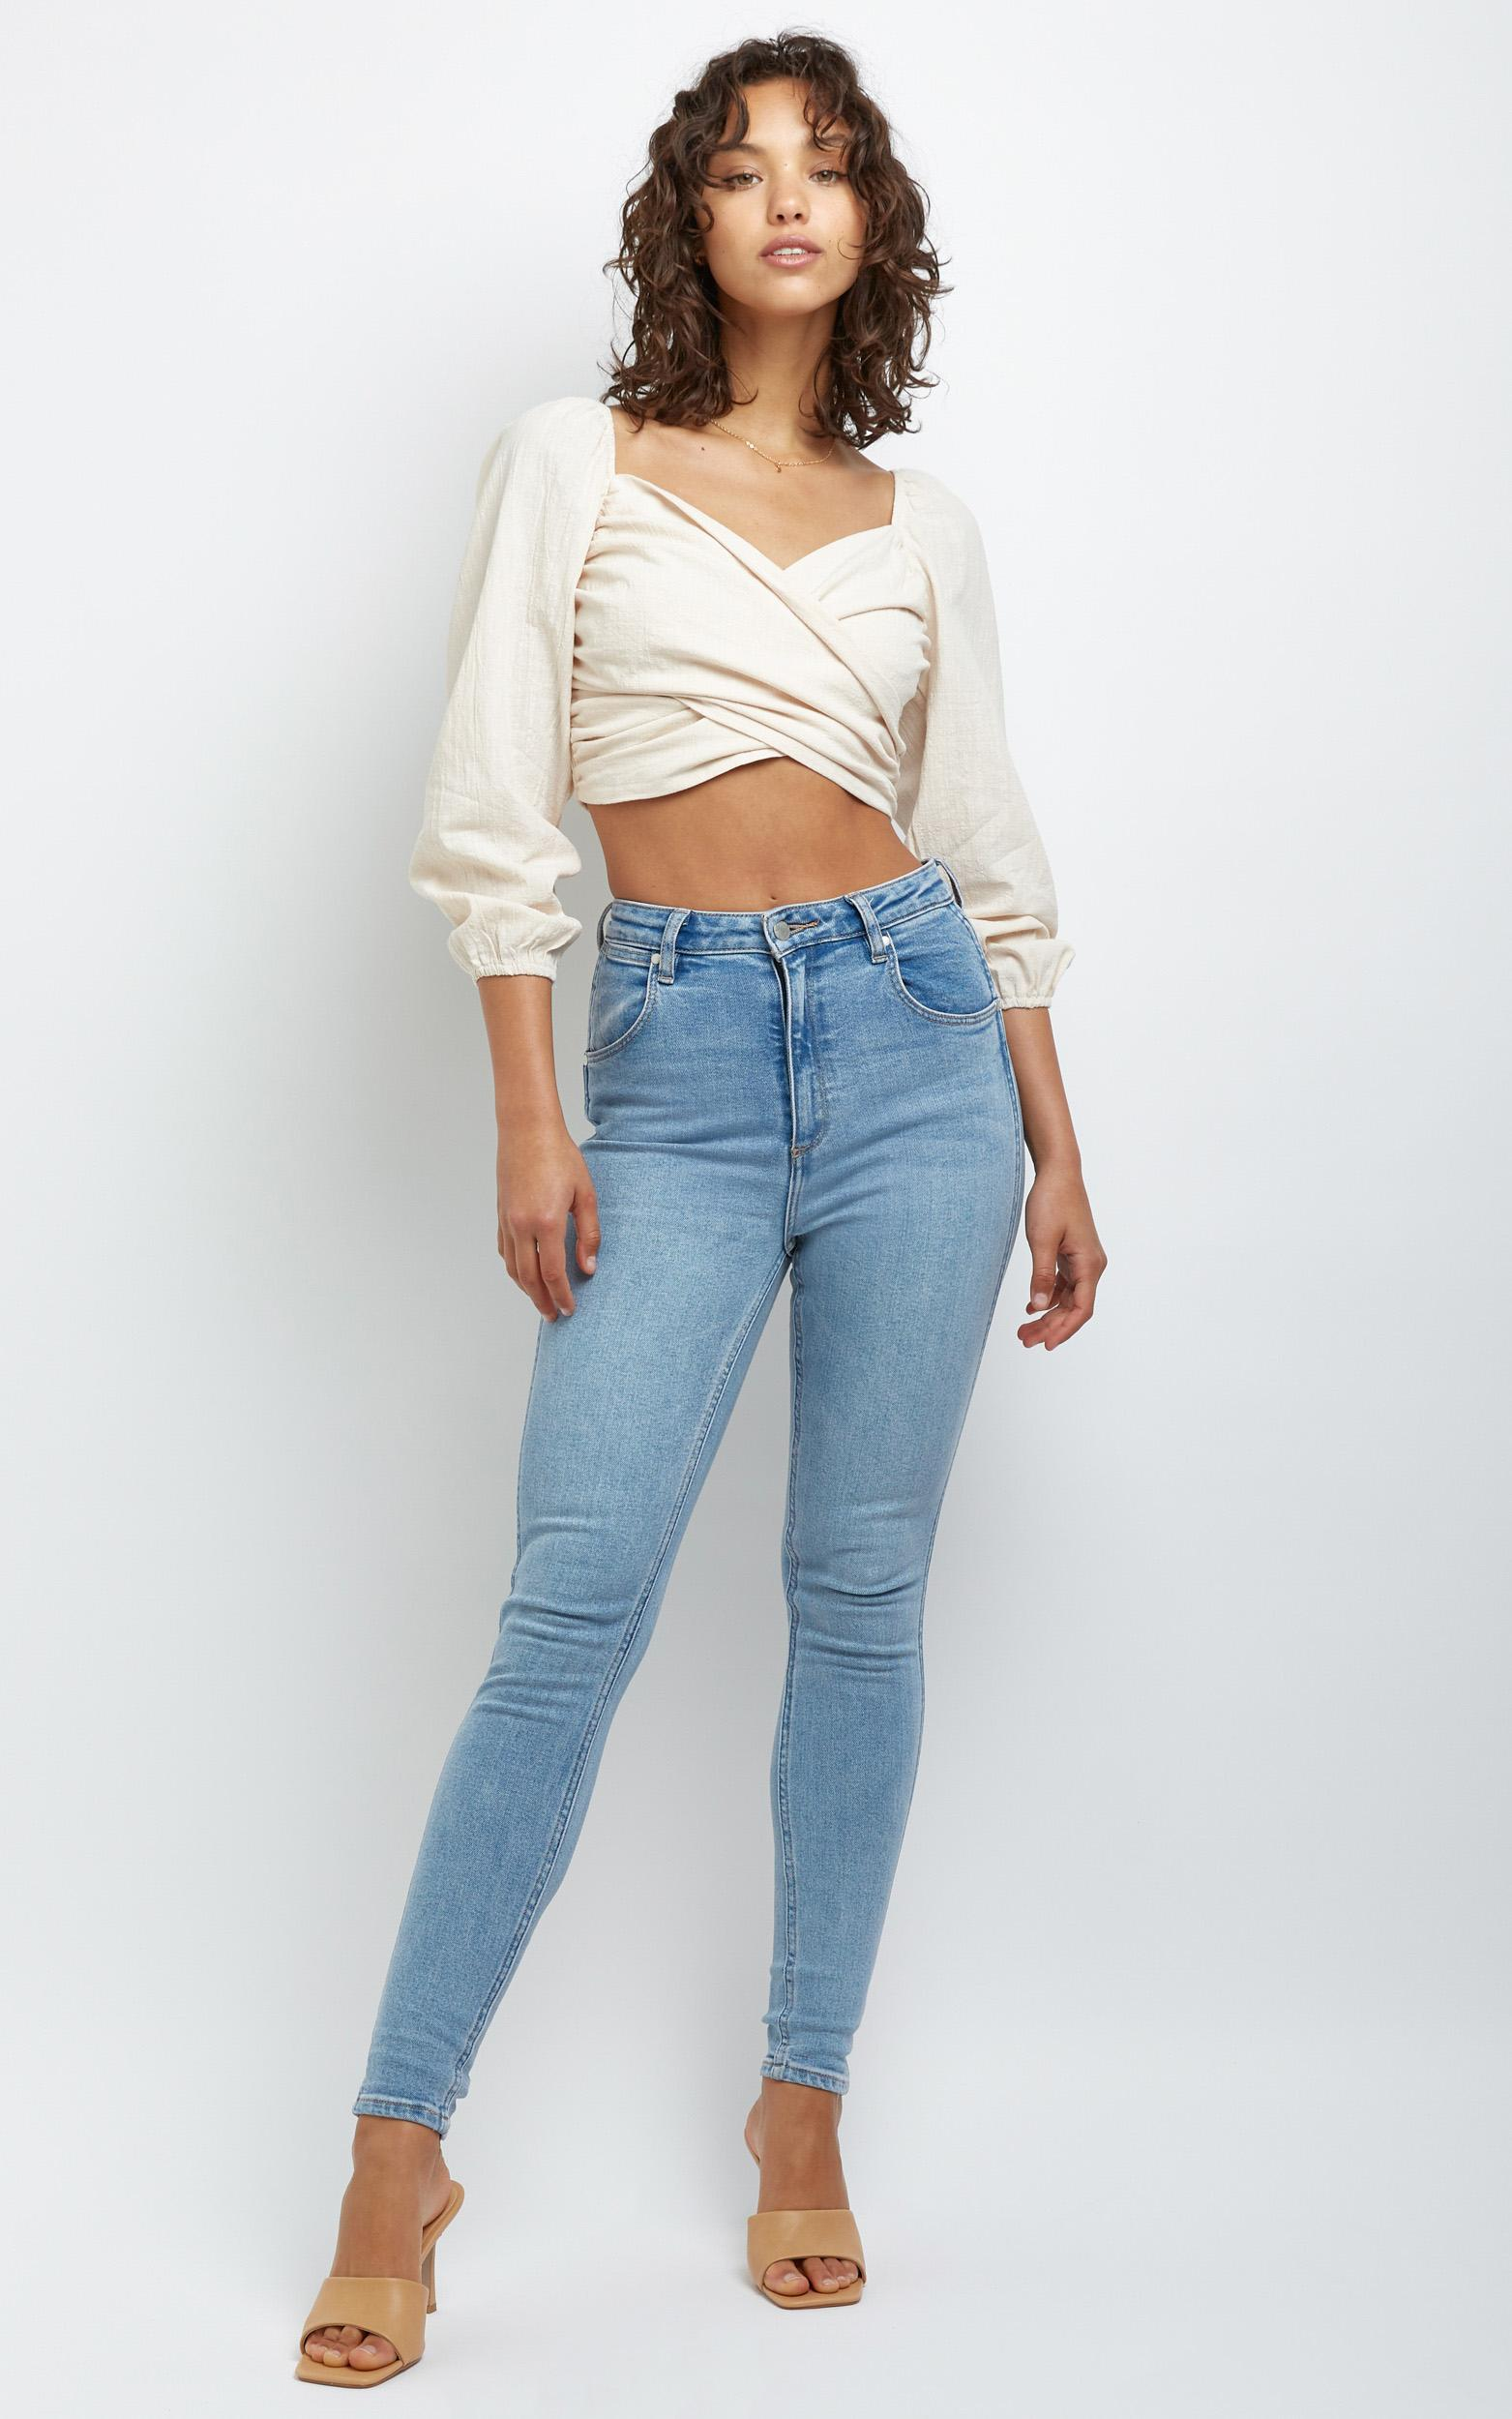 Alyce Long Sleeve Top in Beige - 14 (XL), CRE1, hi-res image number null